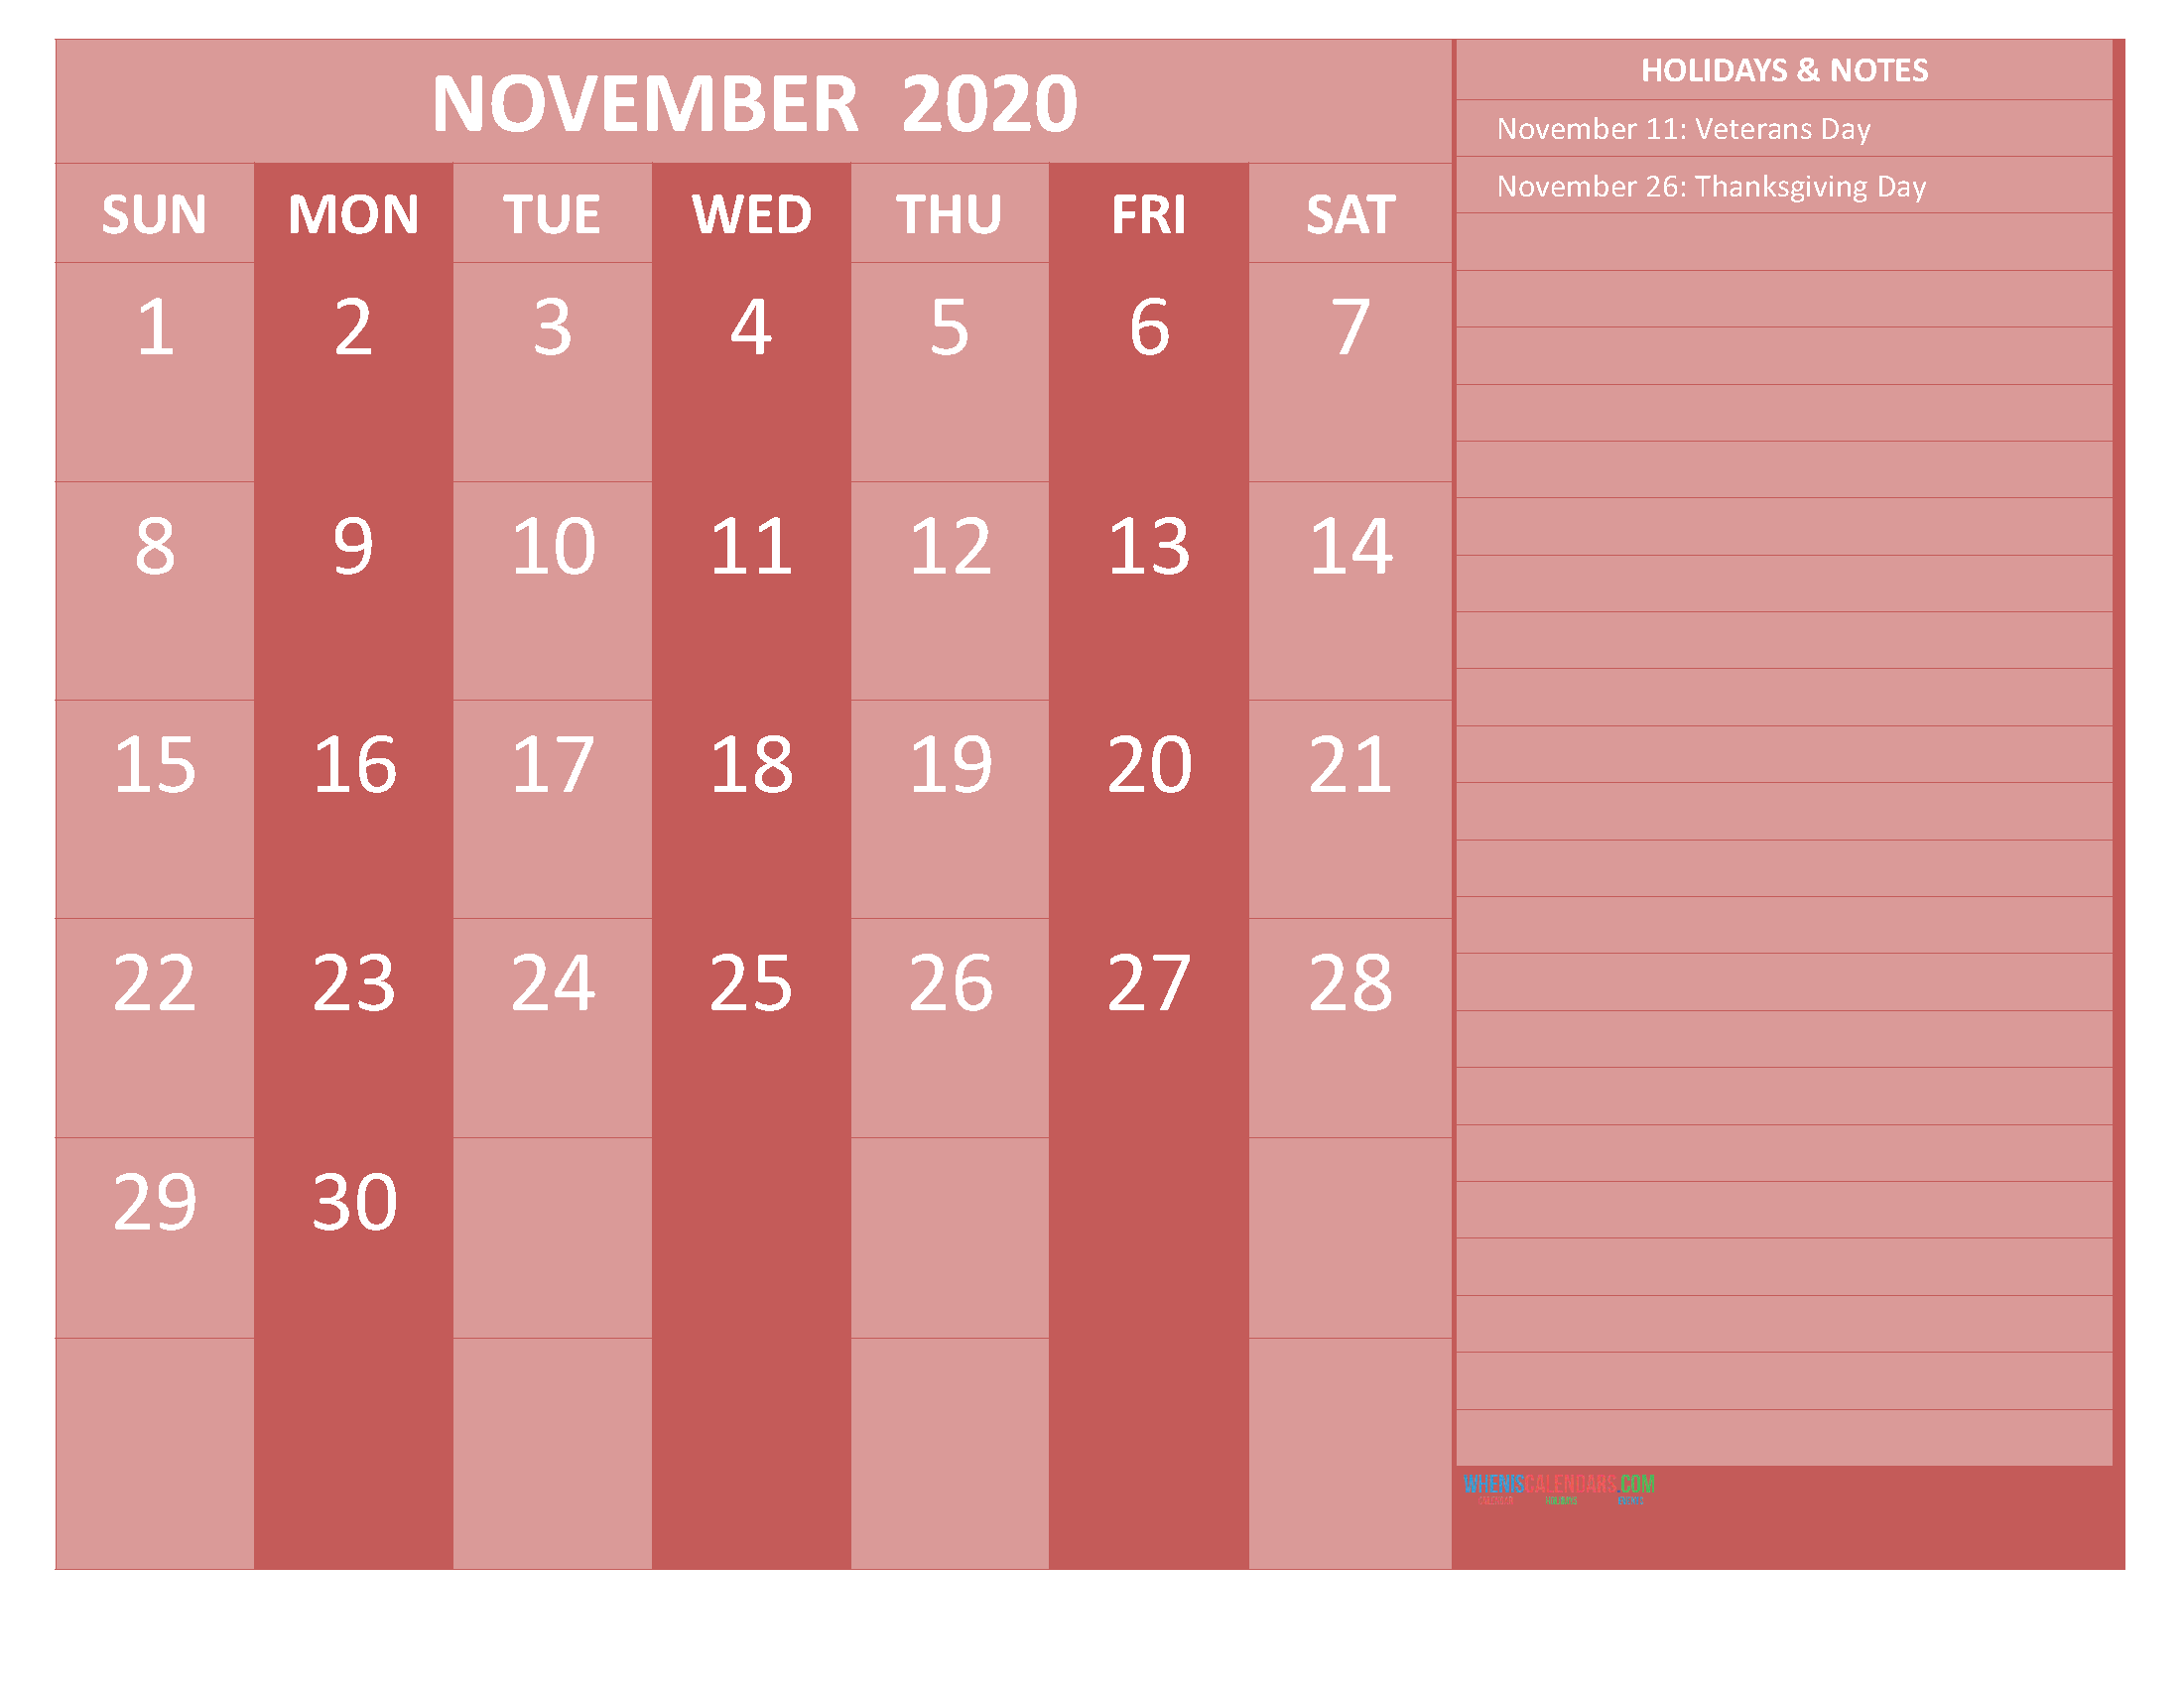 Free Printable Monthly Calendar 2020 November with Holidays